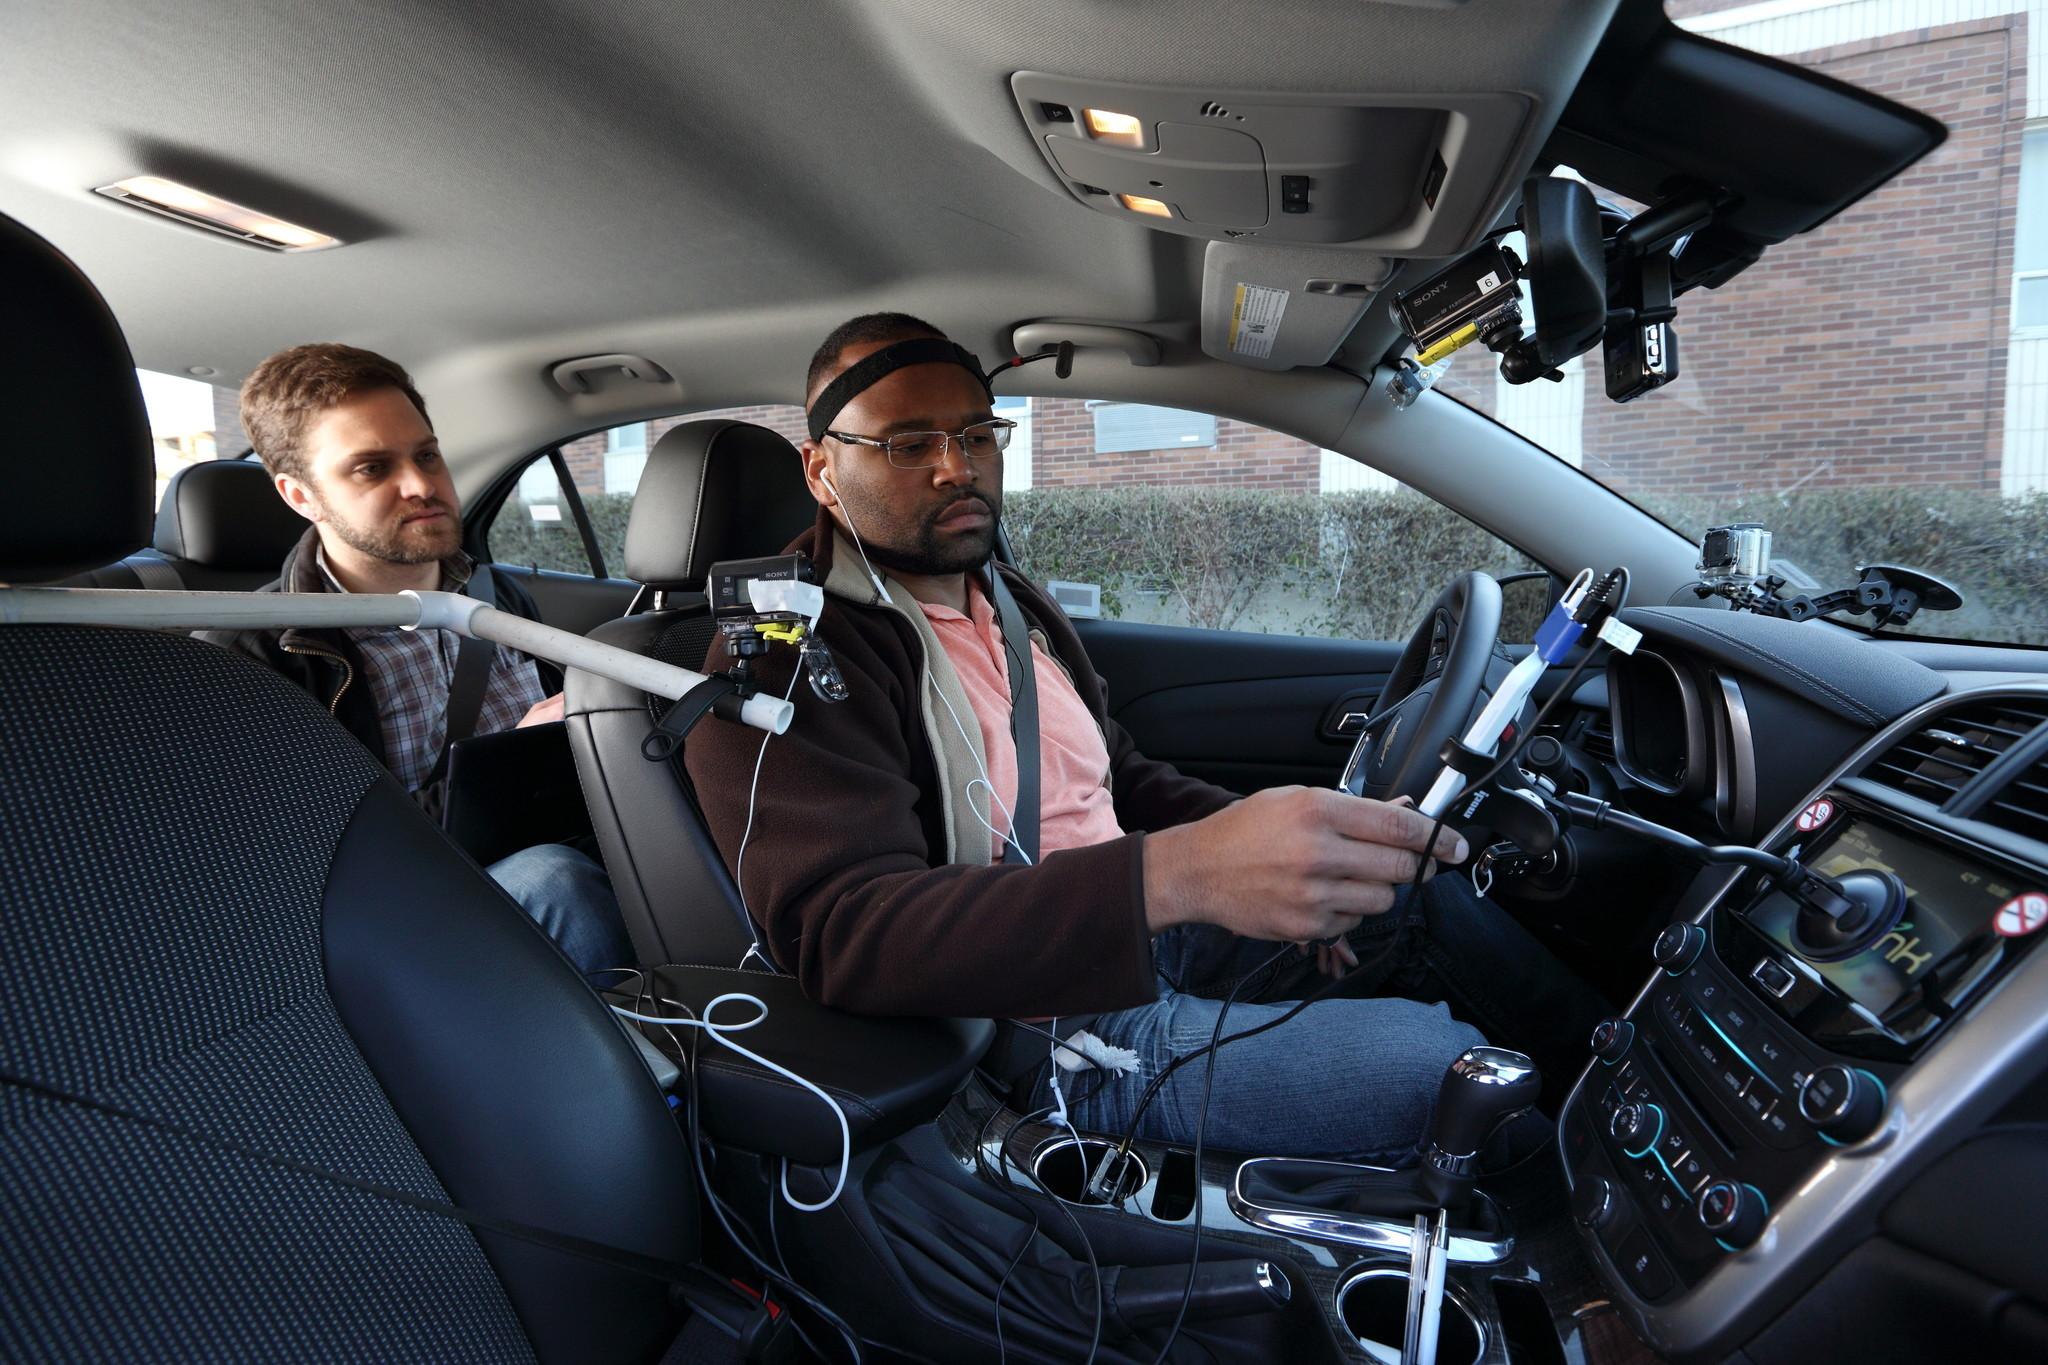 Hands Free Driving Still Distracting And Risky Aaa Says